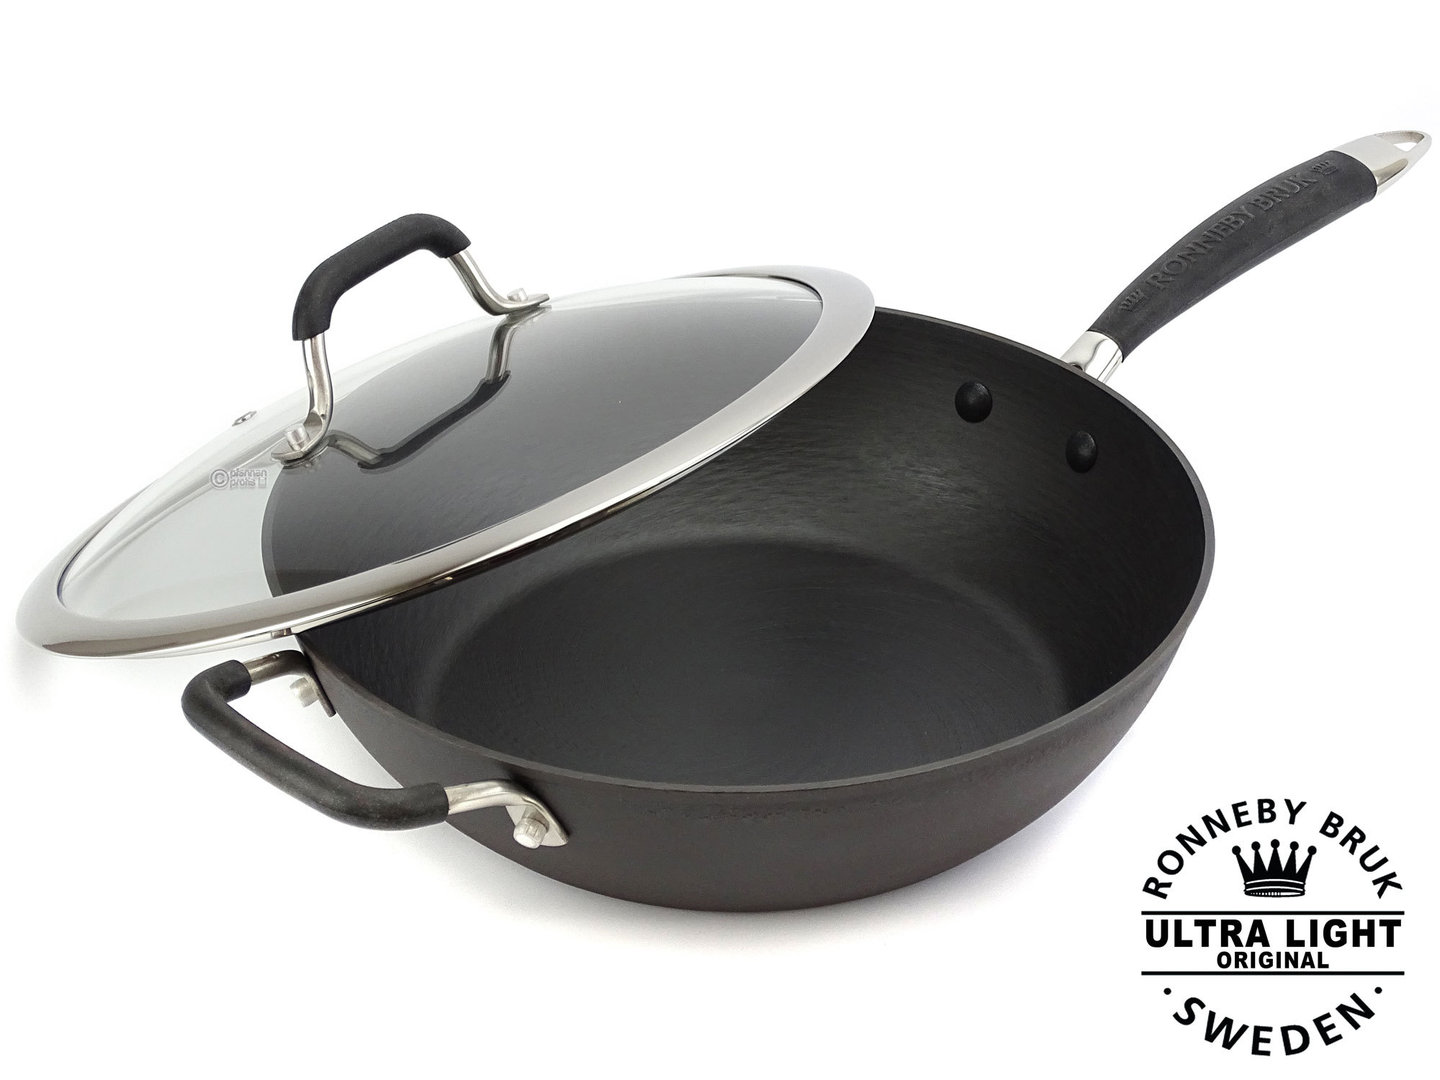 RONNEBY BRUK pre-seasoned deep cast iron frypan ULTRA LIGHT 28 cm with glass lid